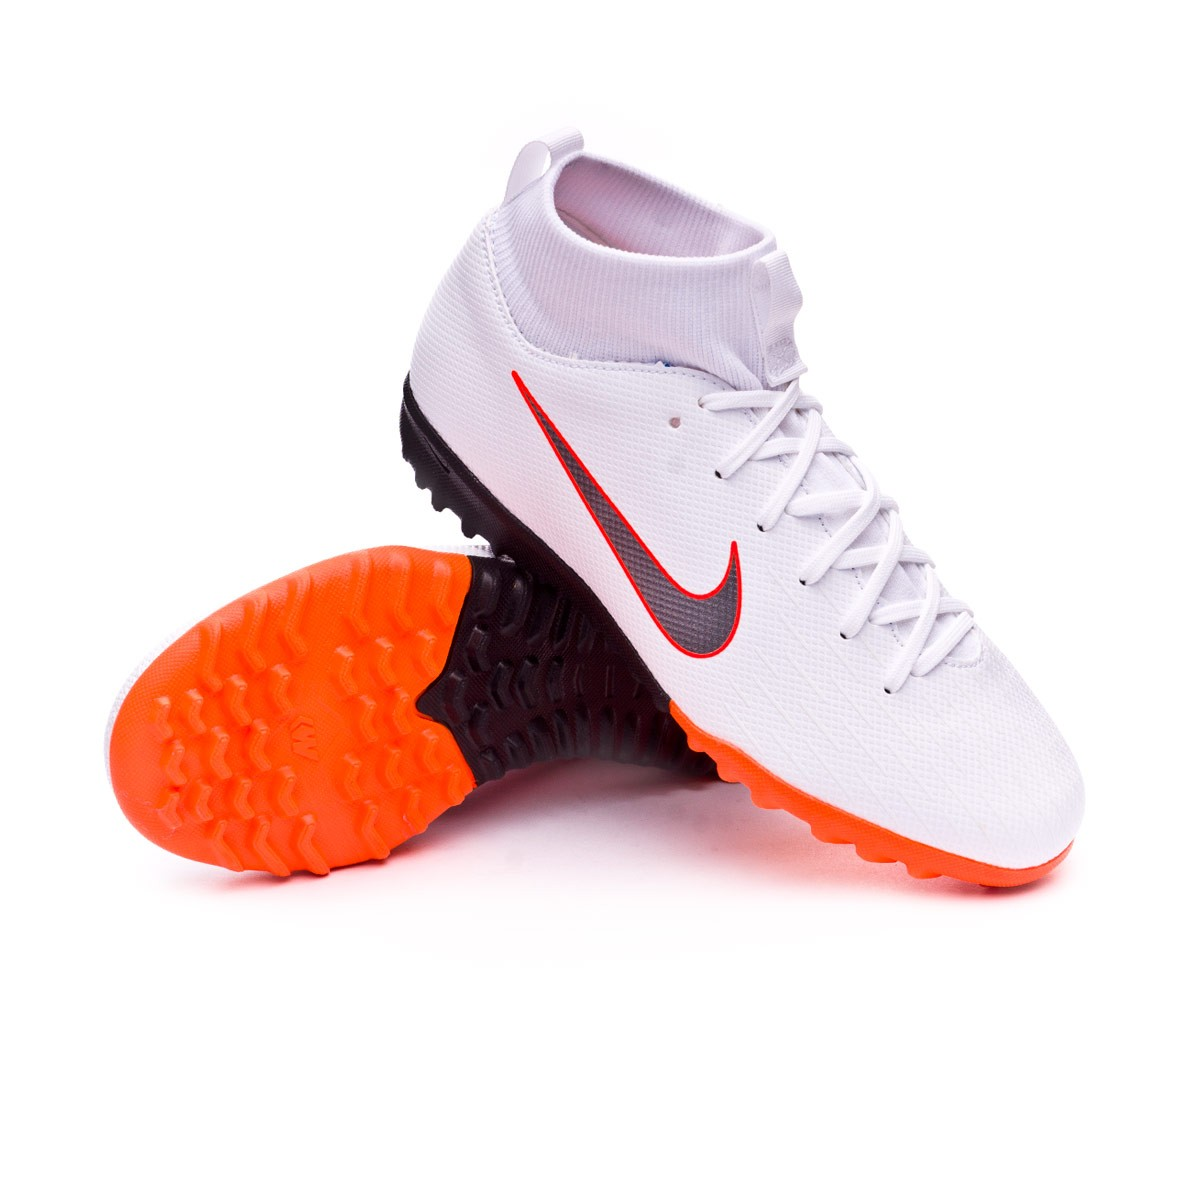 bd9c36e8f5da Football Boot Nike Kids Mercurial SuperflyX VI Academy GS Turf White ...